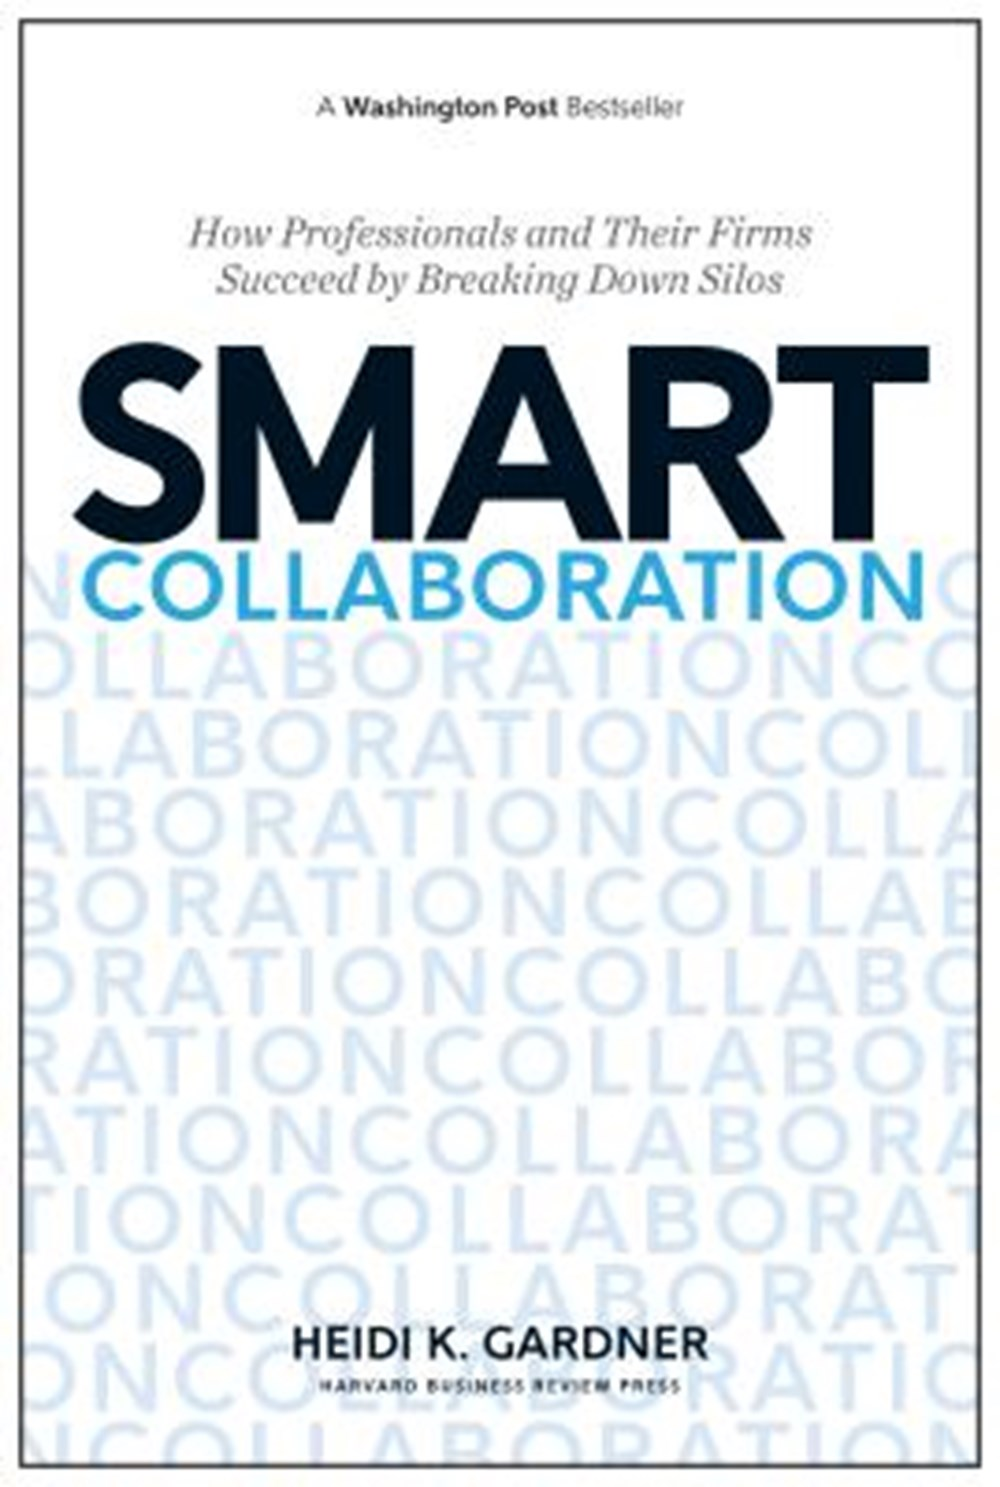 Smart Collaboration How Professionals and Their Firms Succeed by Breaking Down Silos